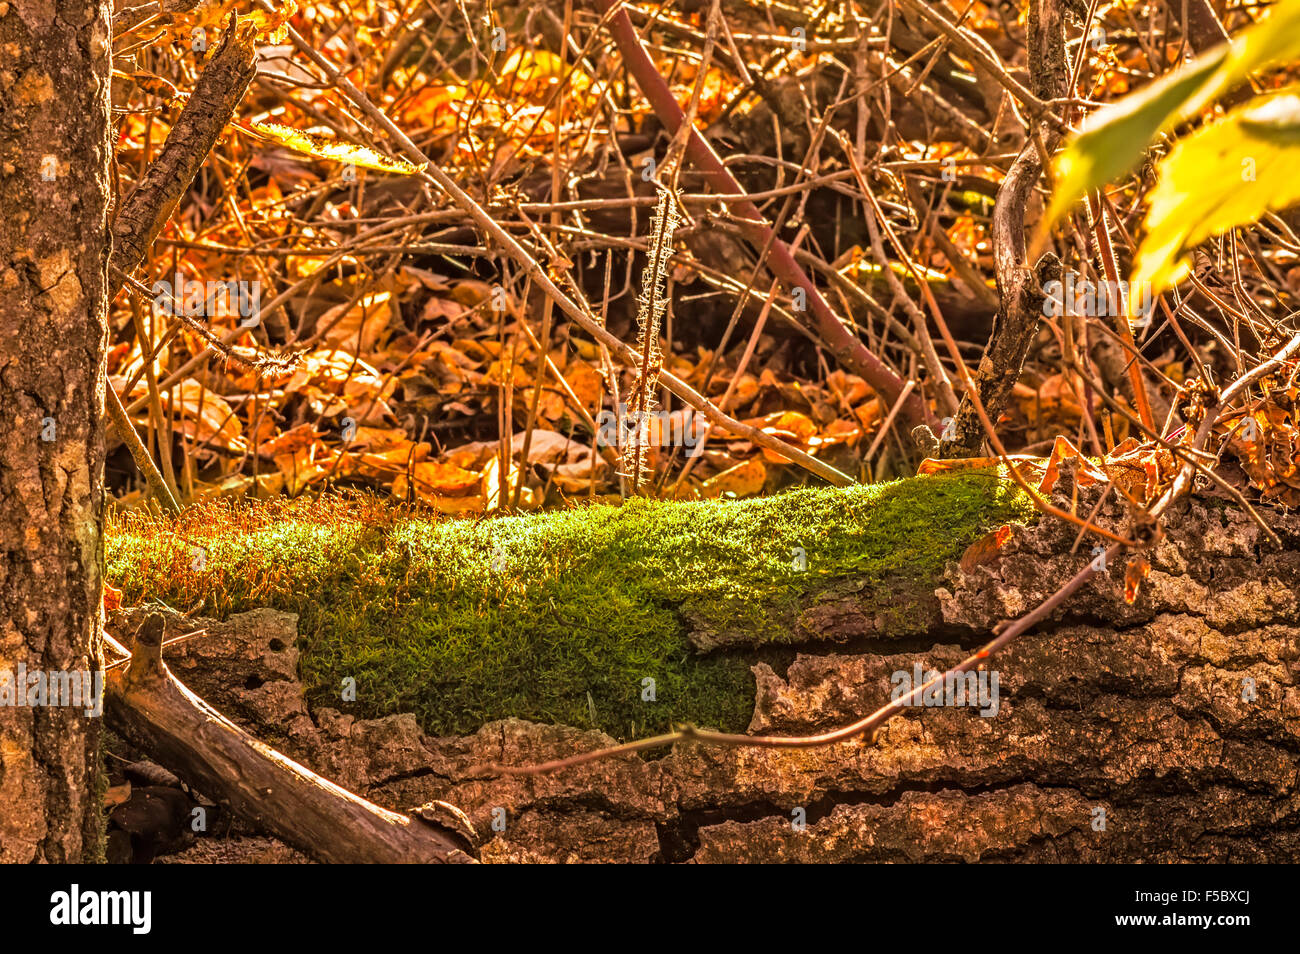 A fallen log, amongst the forest undergrowth, begins to succumb to moss. Stock Photo